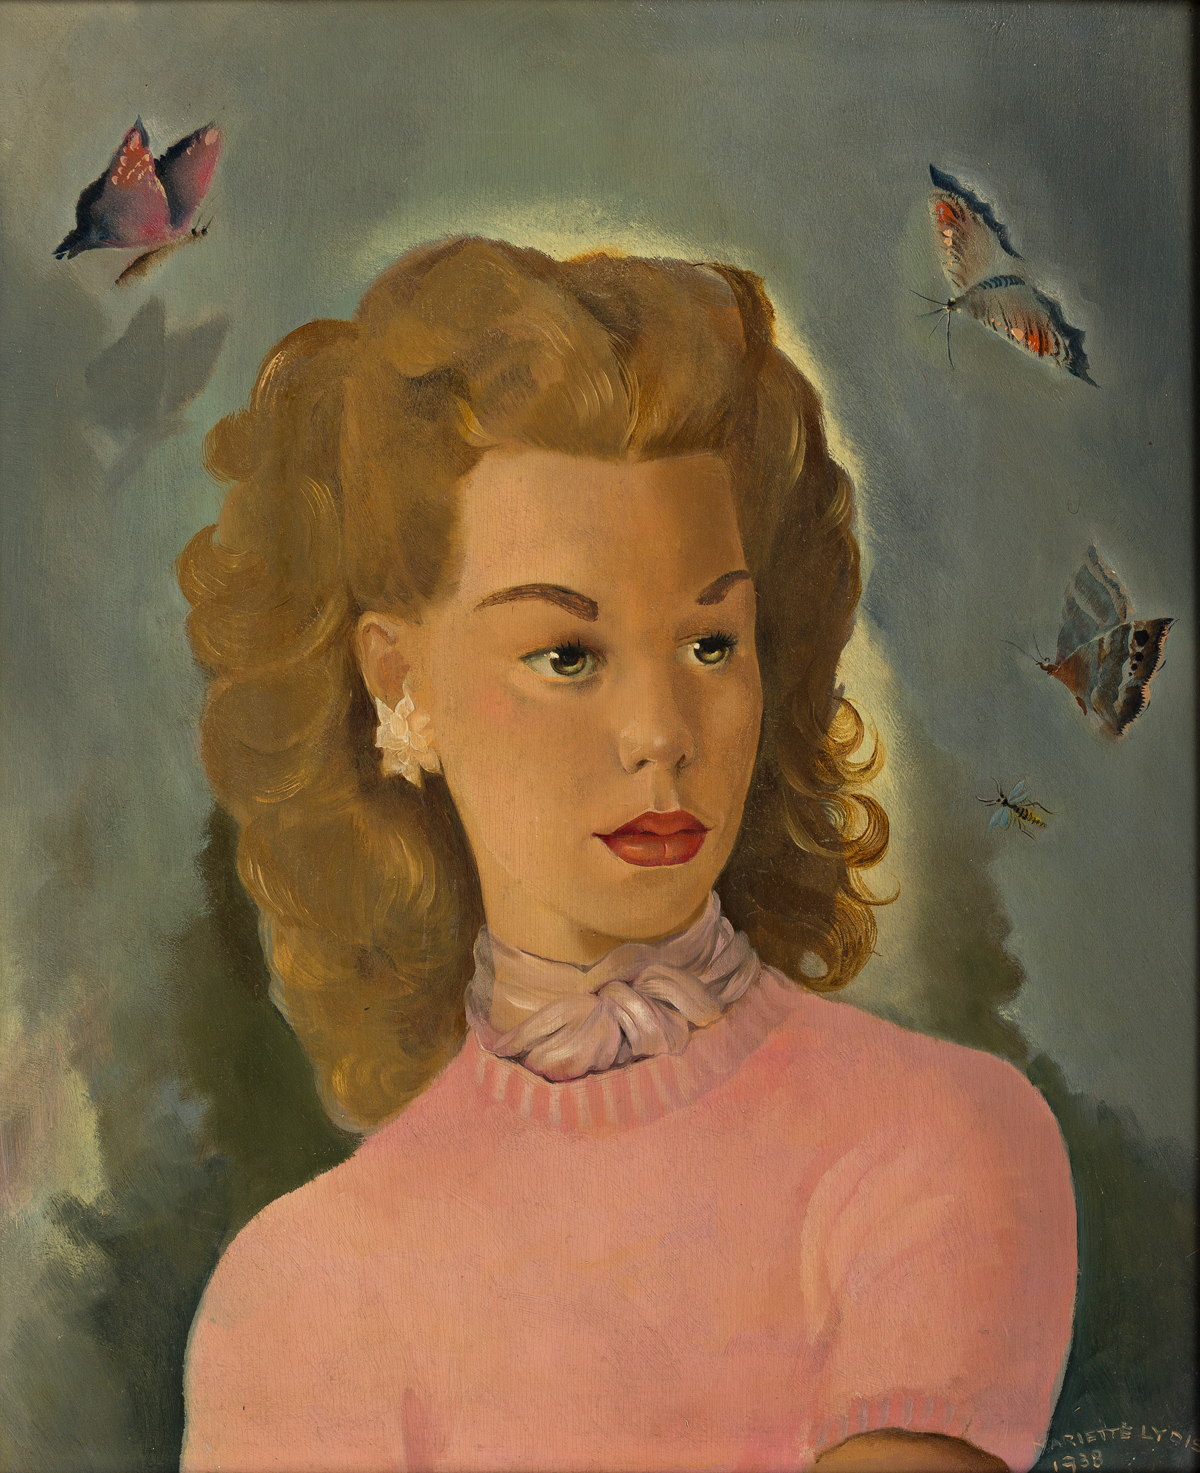 MARIETTE LYDIS (1887-1970) Portrait of a Young Woman with Butterflies.